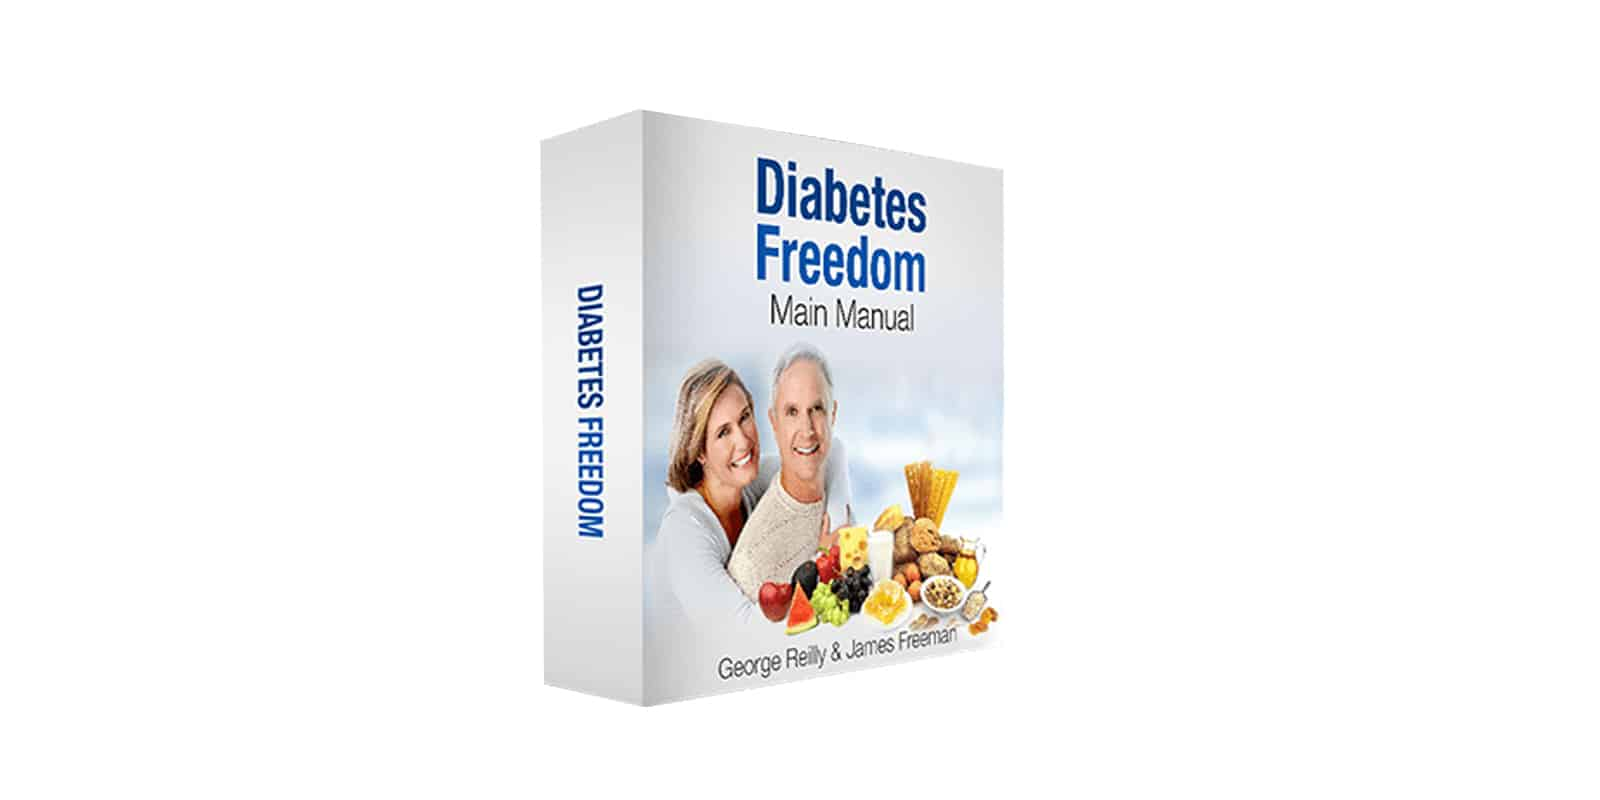 Diabetes Freedom Program review